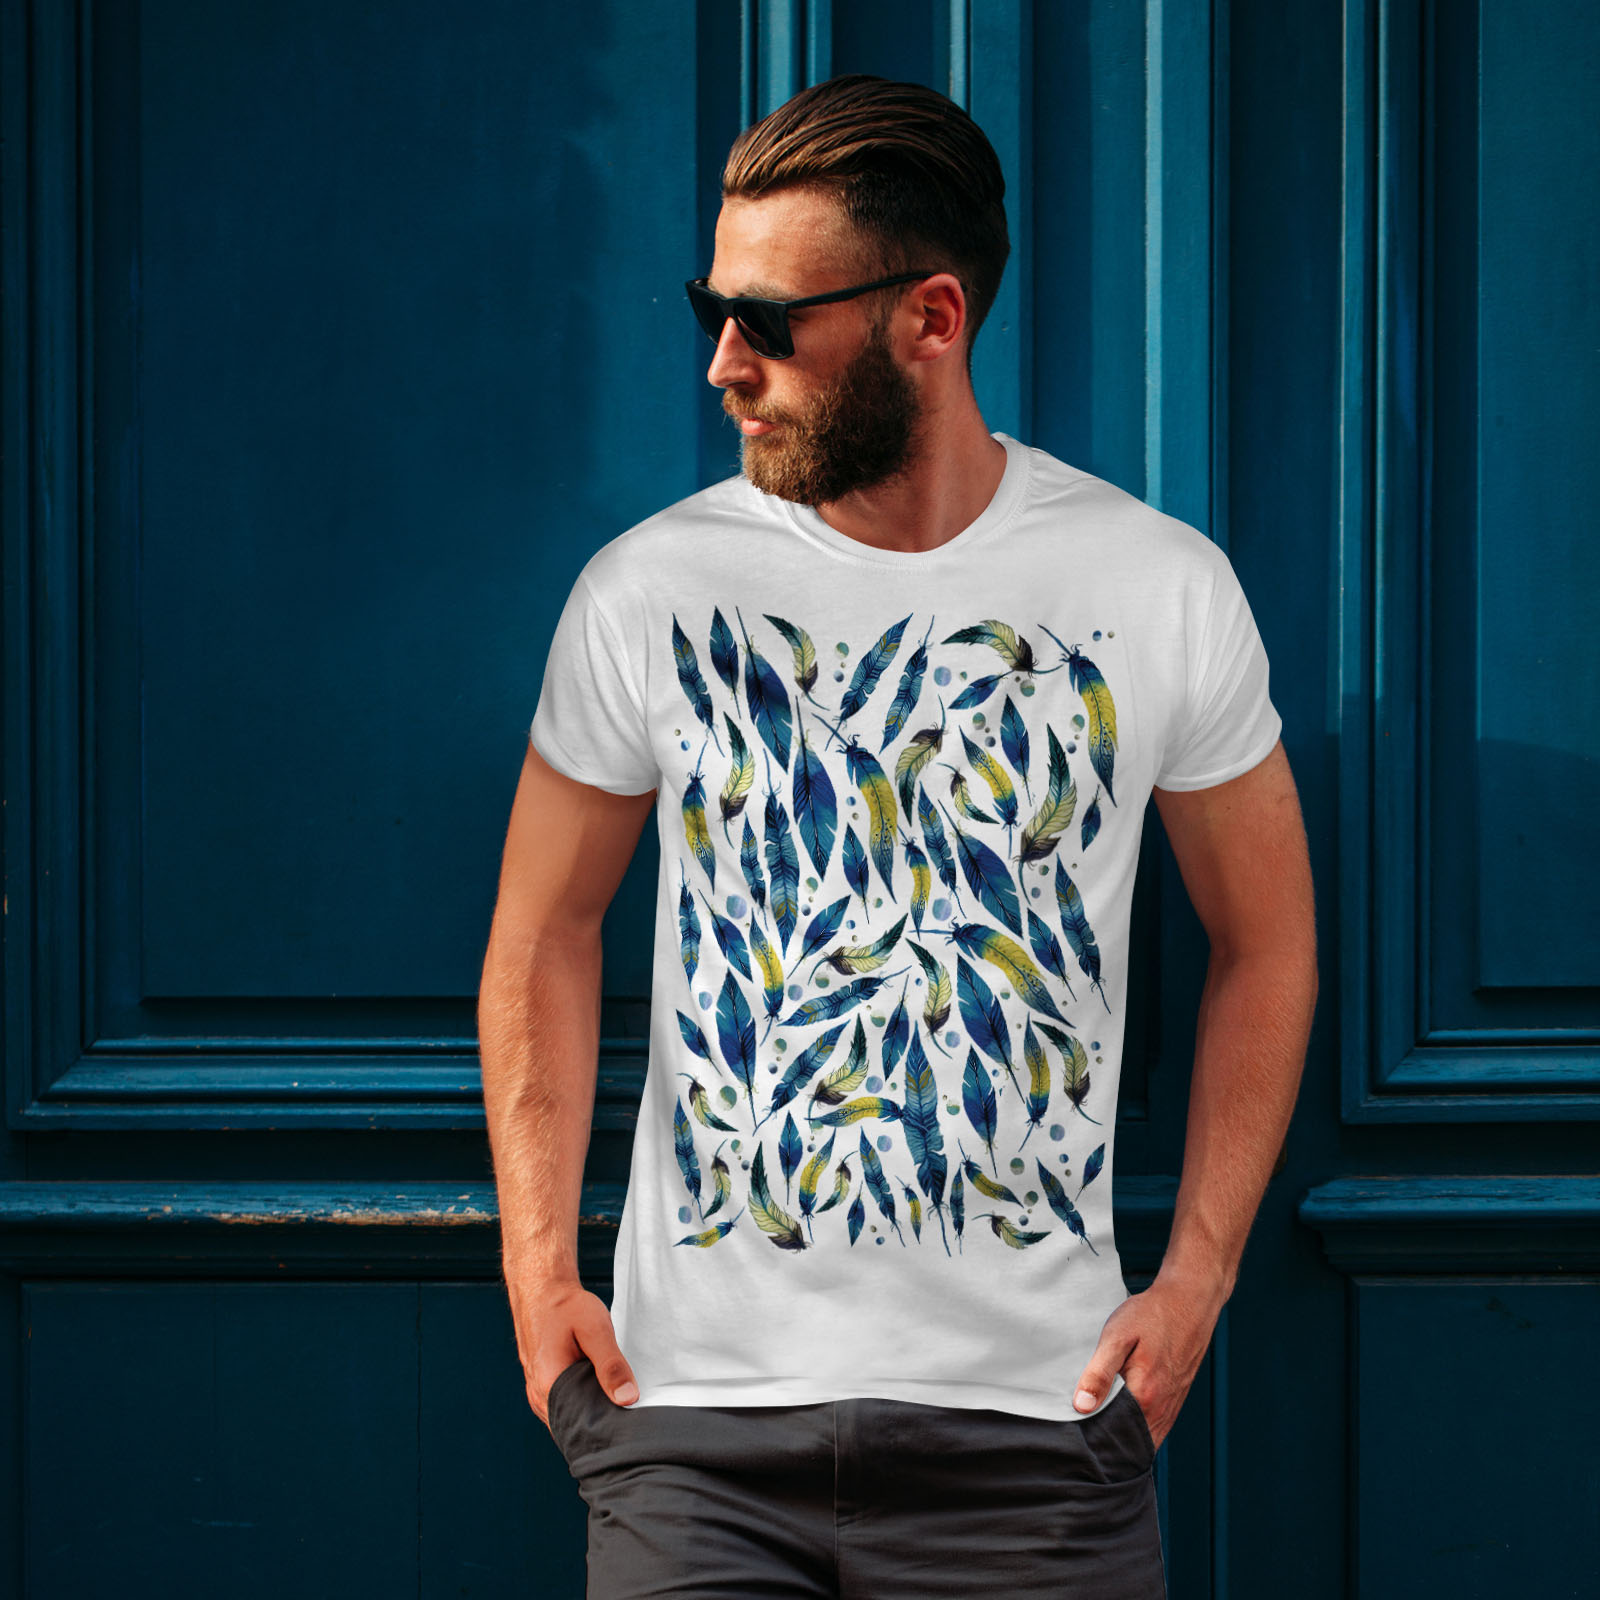 Wellcoda-fashion-Plumes-T-shirt-homme-Abstract-Design-graphique-imprime-Tee miniature 10